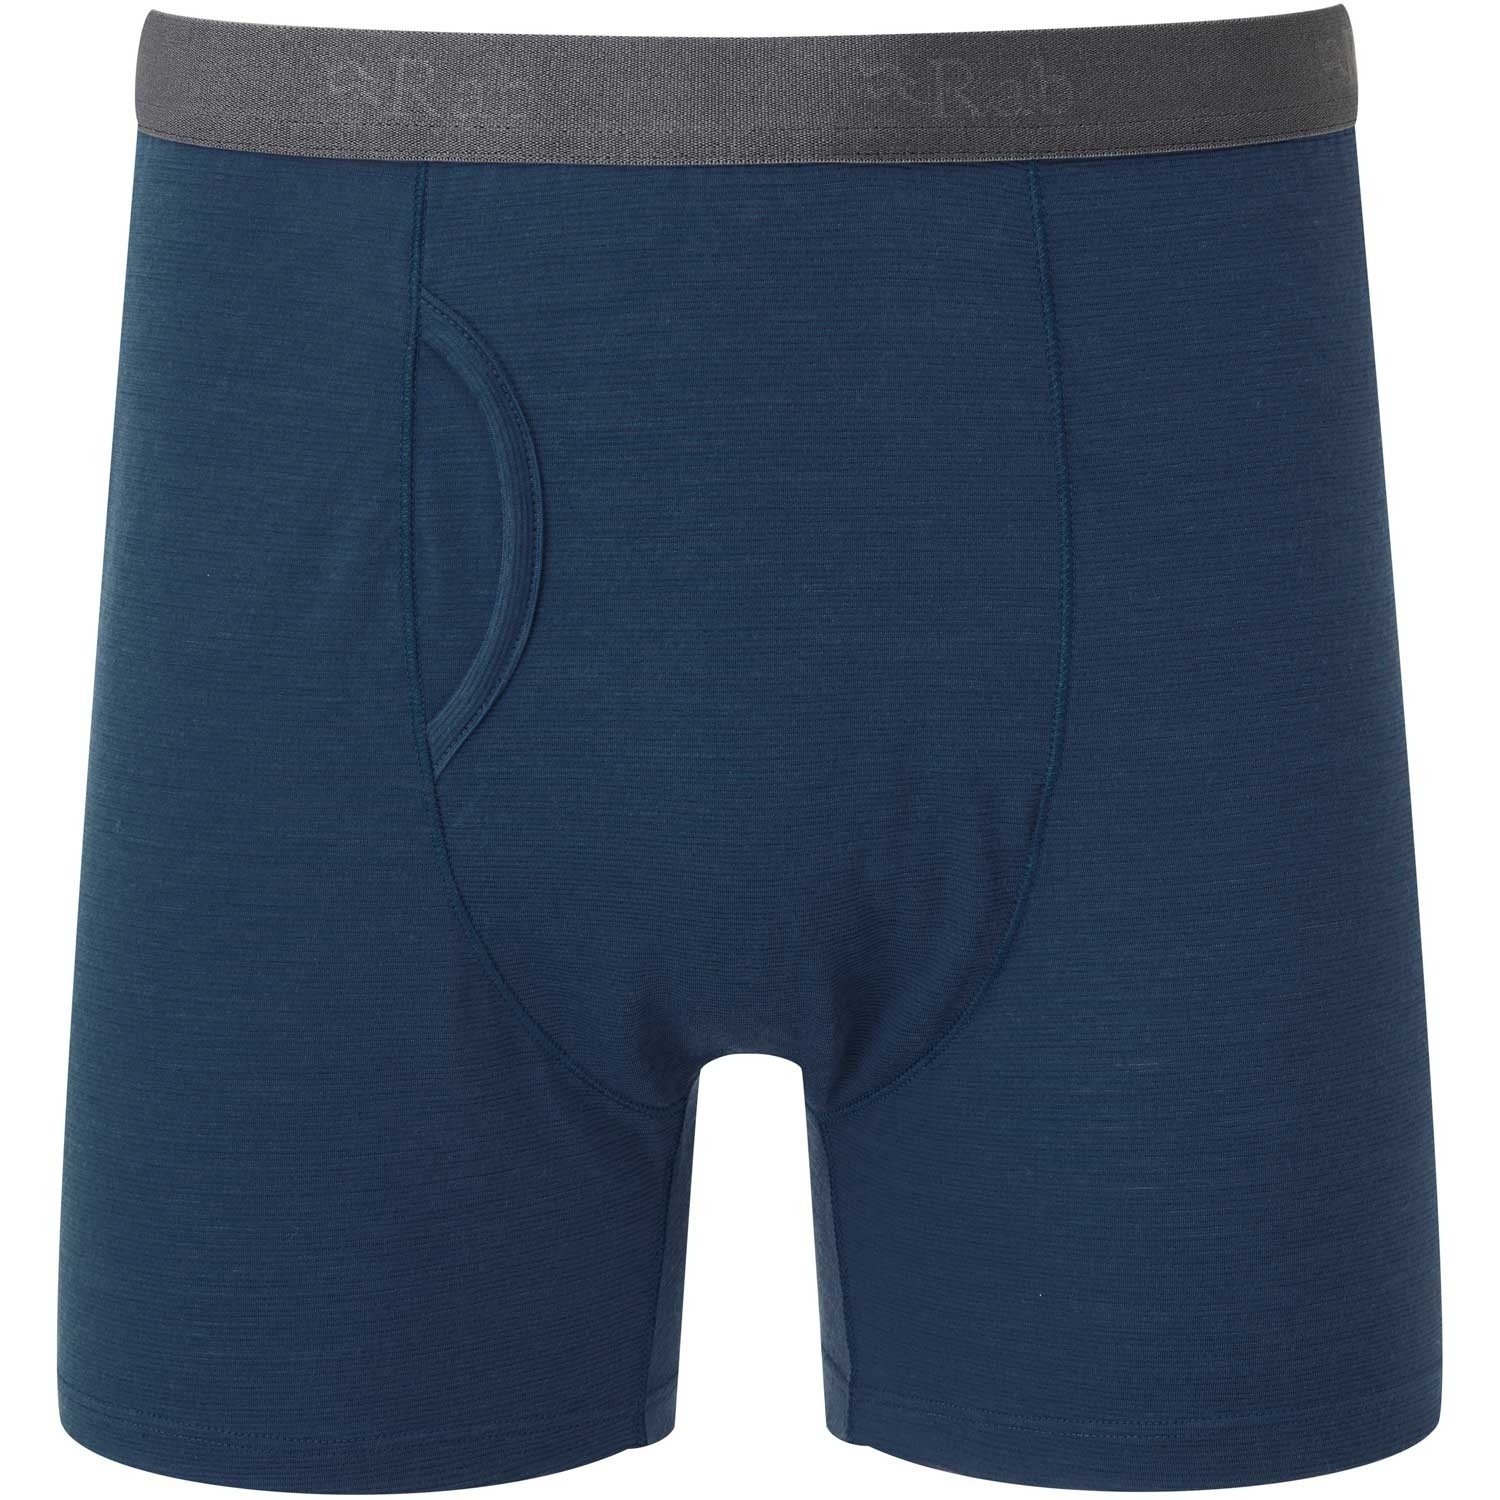 Rab Forge Boxers - Men's - Ink